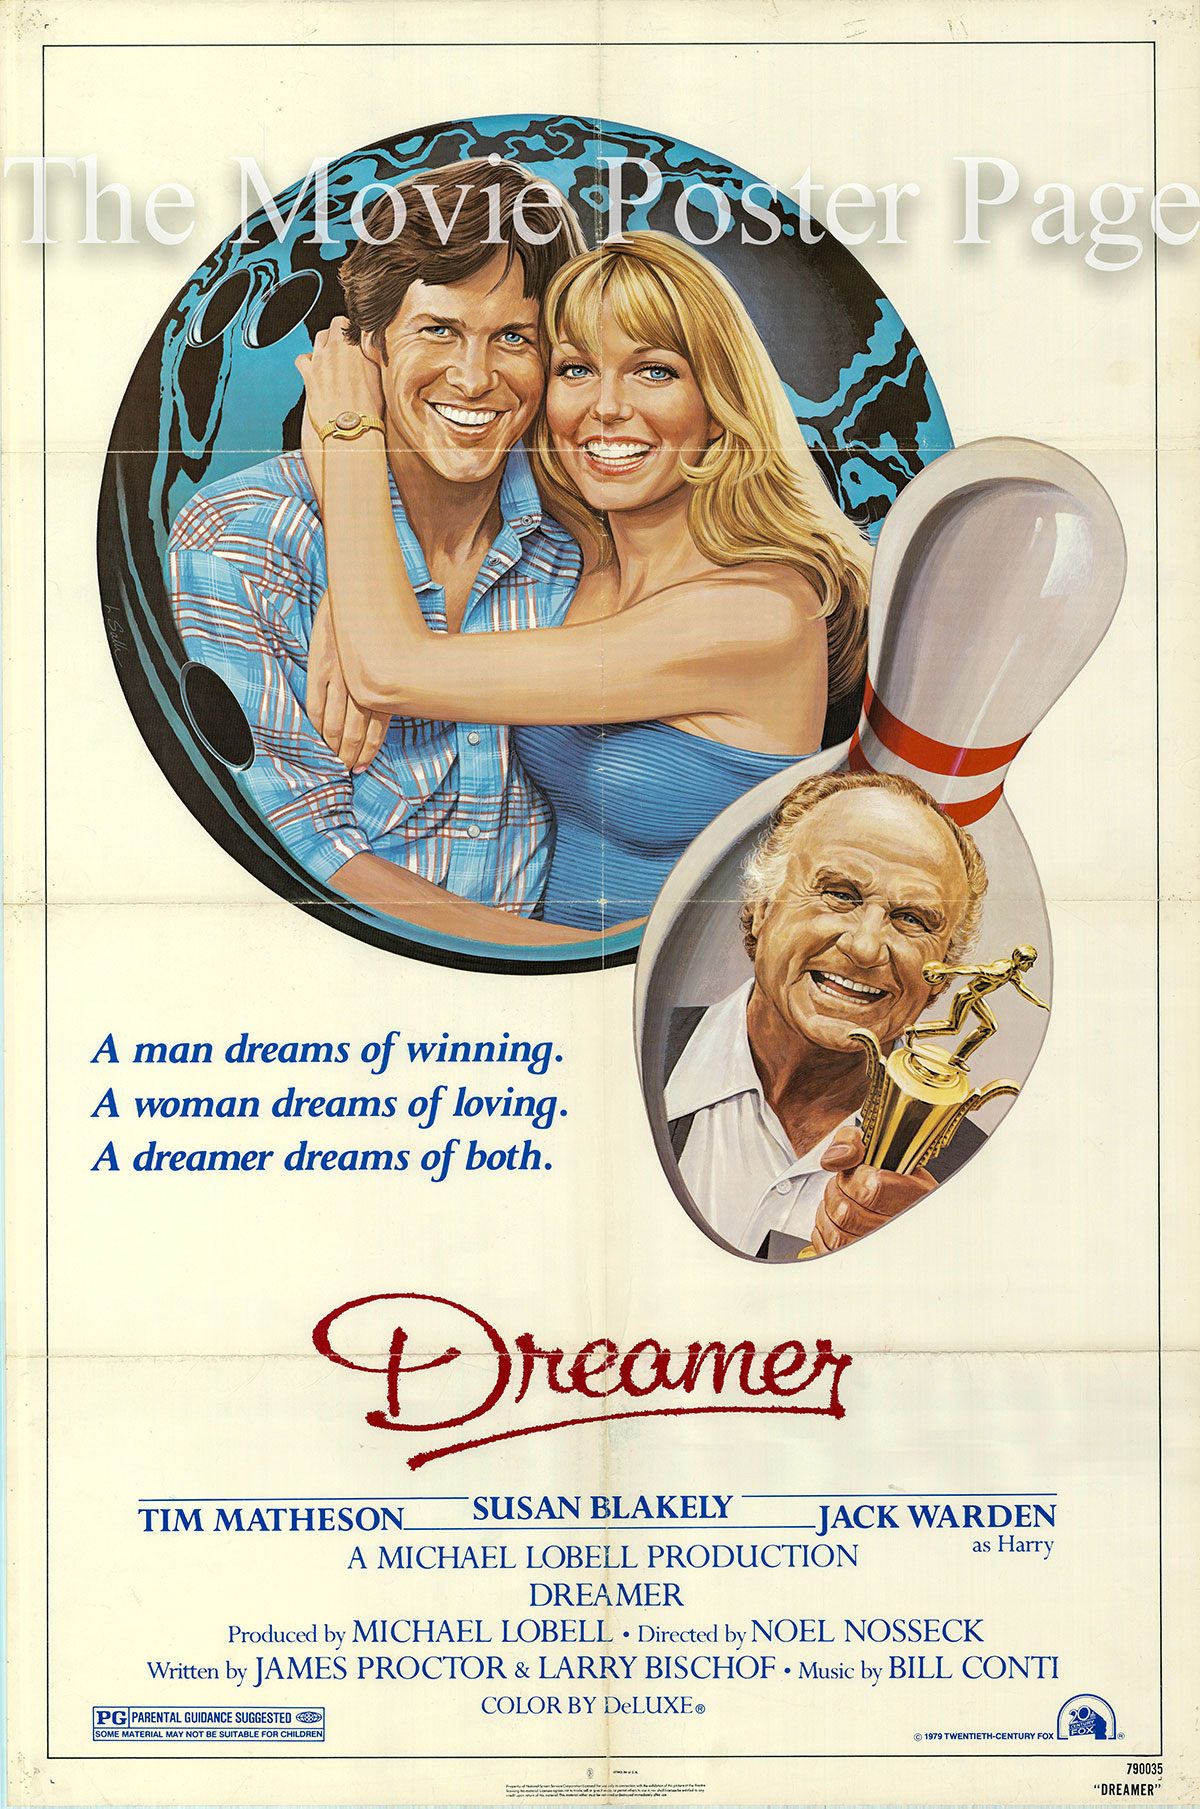 Pictured is a US one-sheet for the 1979 Noel Nosseck film Dreamer starring Tim Mattheson.